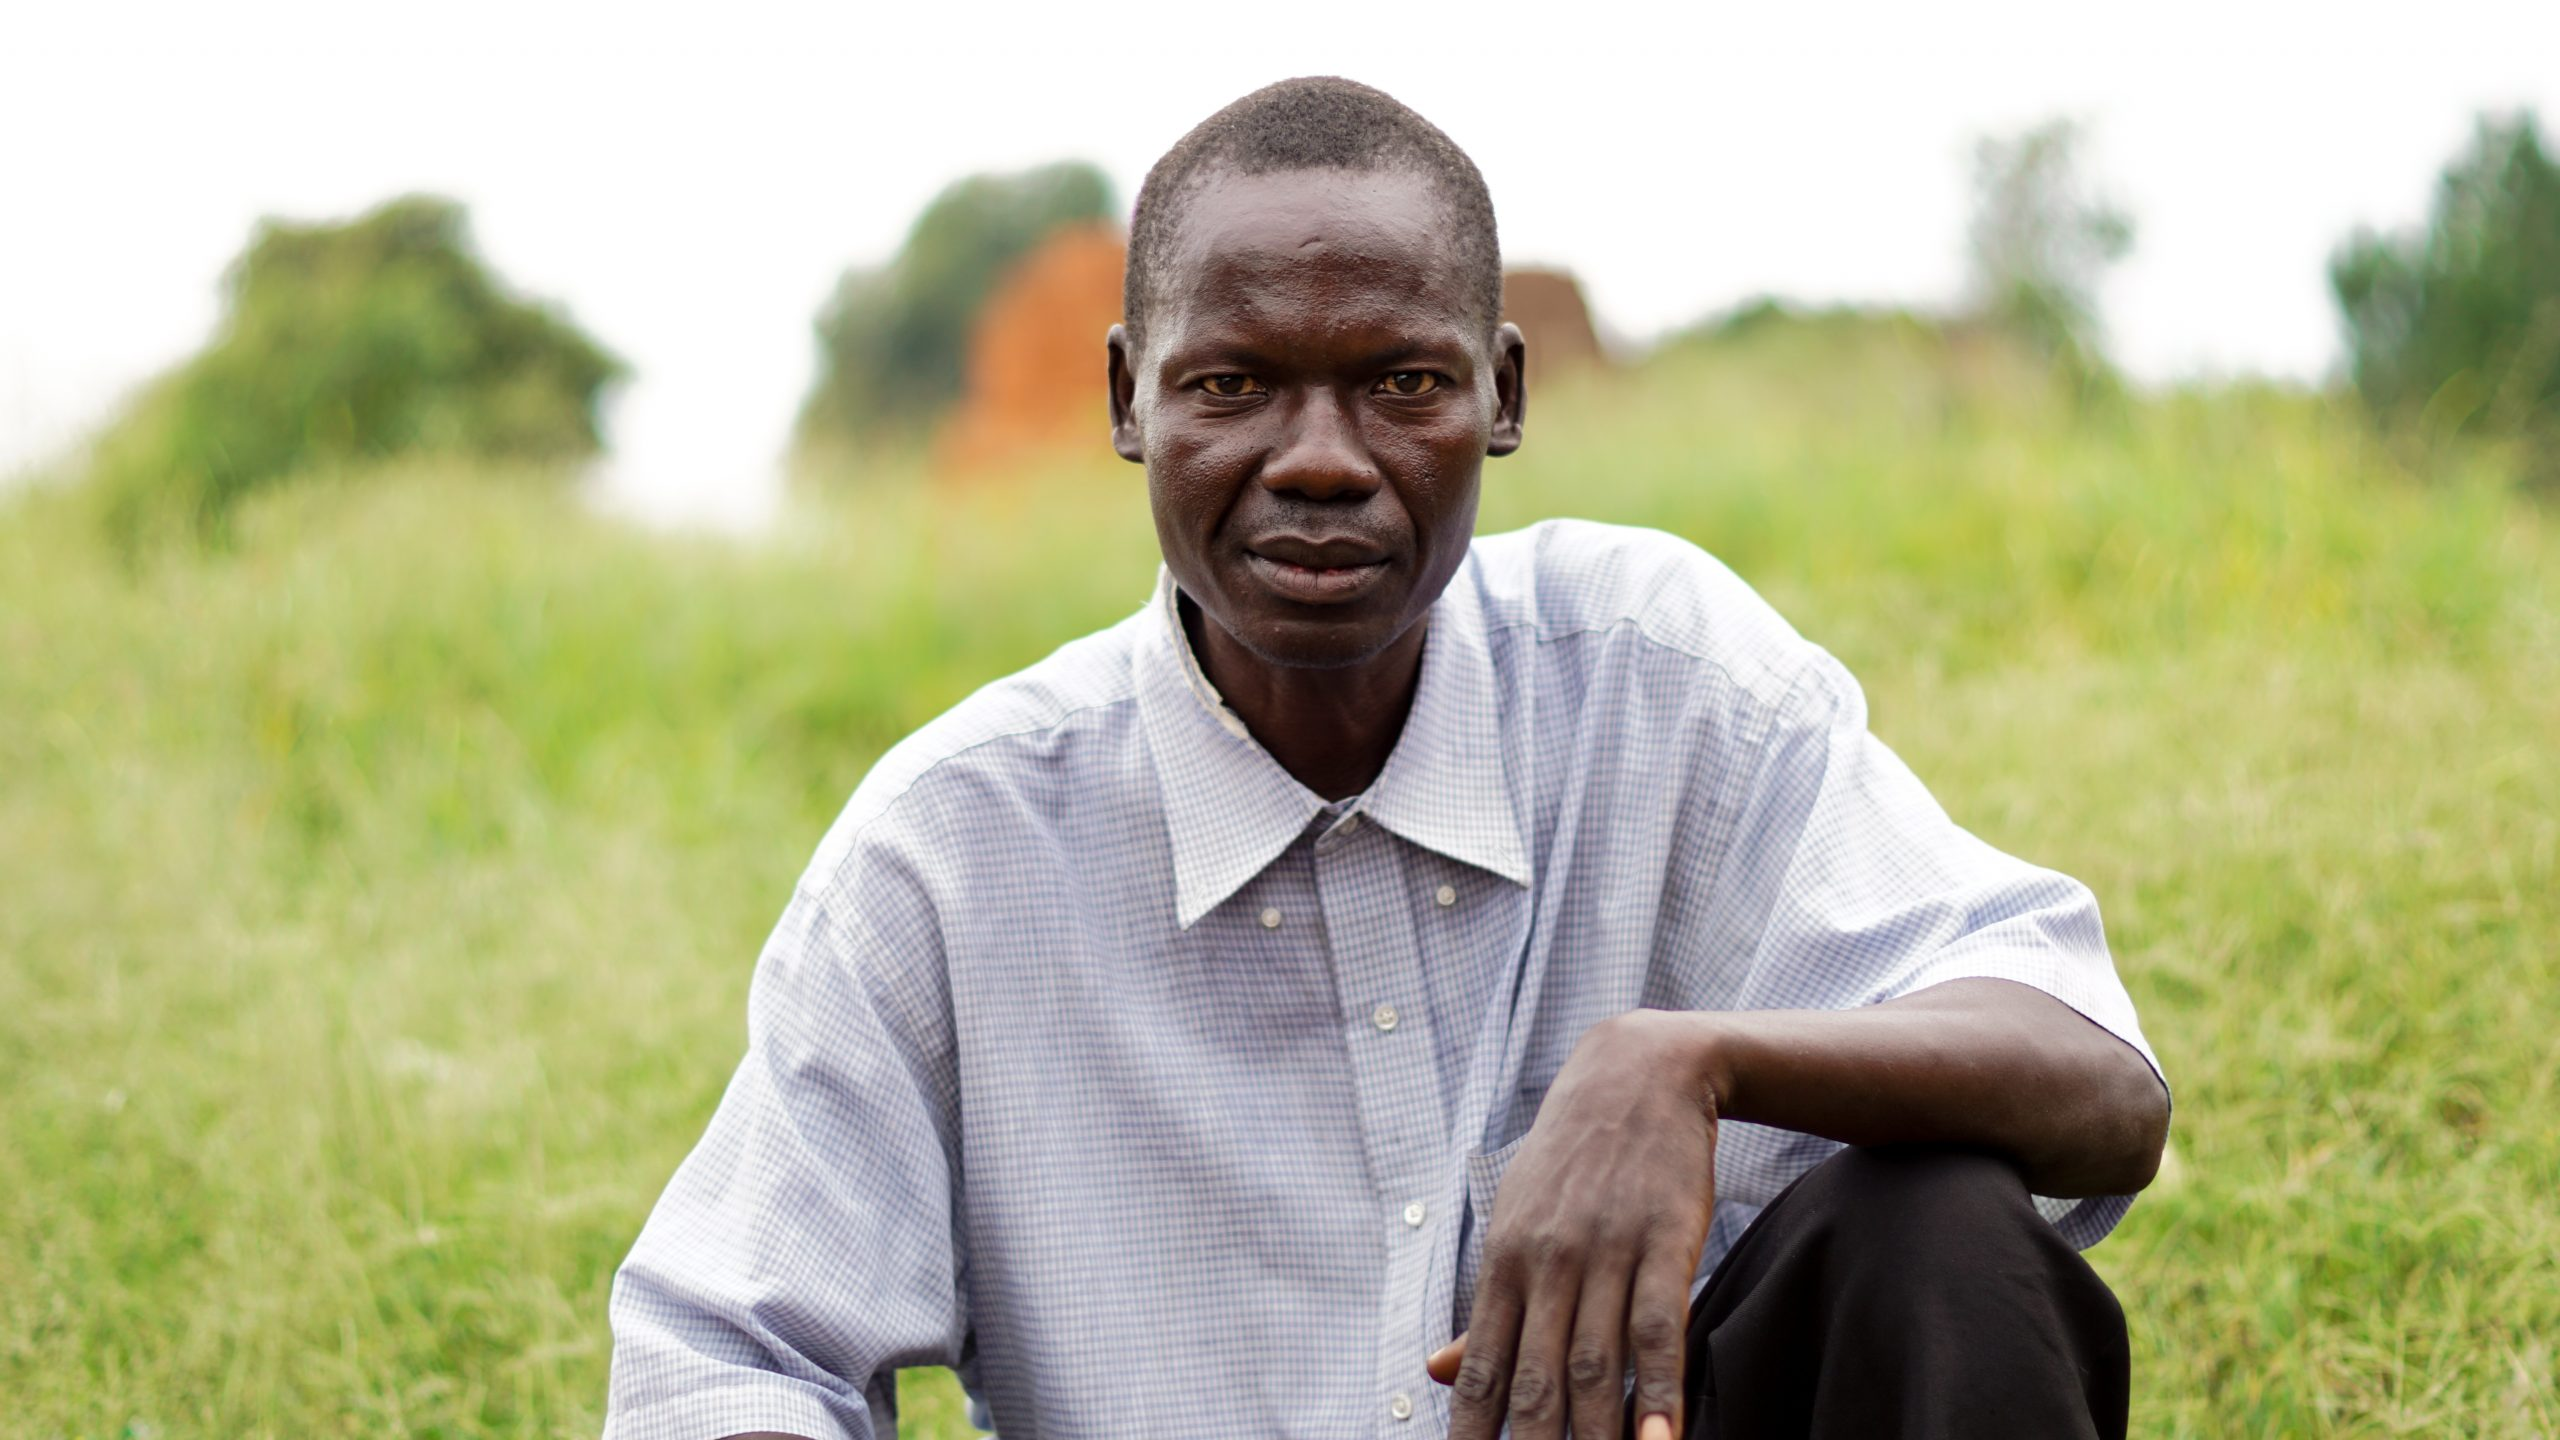 "Lukodi, Uganda: ""I have not forgiven rebels because none of them ever came to ask for forgiveness. I am still grieving,"" says Calvin Dcora, a 52-year-old man, lost one child and 18 relatives in an attack on the Lukodi community in May 2004, known as the Lukodi massacre, in which more than 60 people were killed by the Lord Resistance Army's (LRA) rebels. Dcora knows one former LRA corporal who participated in the Lukodi killings and returned to the community, but never engaged in dialogue. In his opinion, Acholi cultural leaders could play a primary role in reuniting victims and perpetrators by arranging the traditional reconciliatory ceremony called Mato Oput during which both parties to the conflict drink a mixture made from the root of the oput tree in a sign of forgiveness."